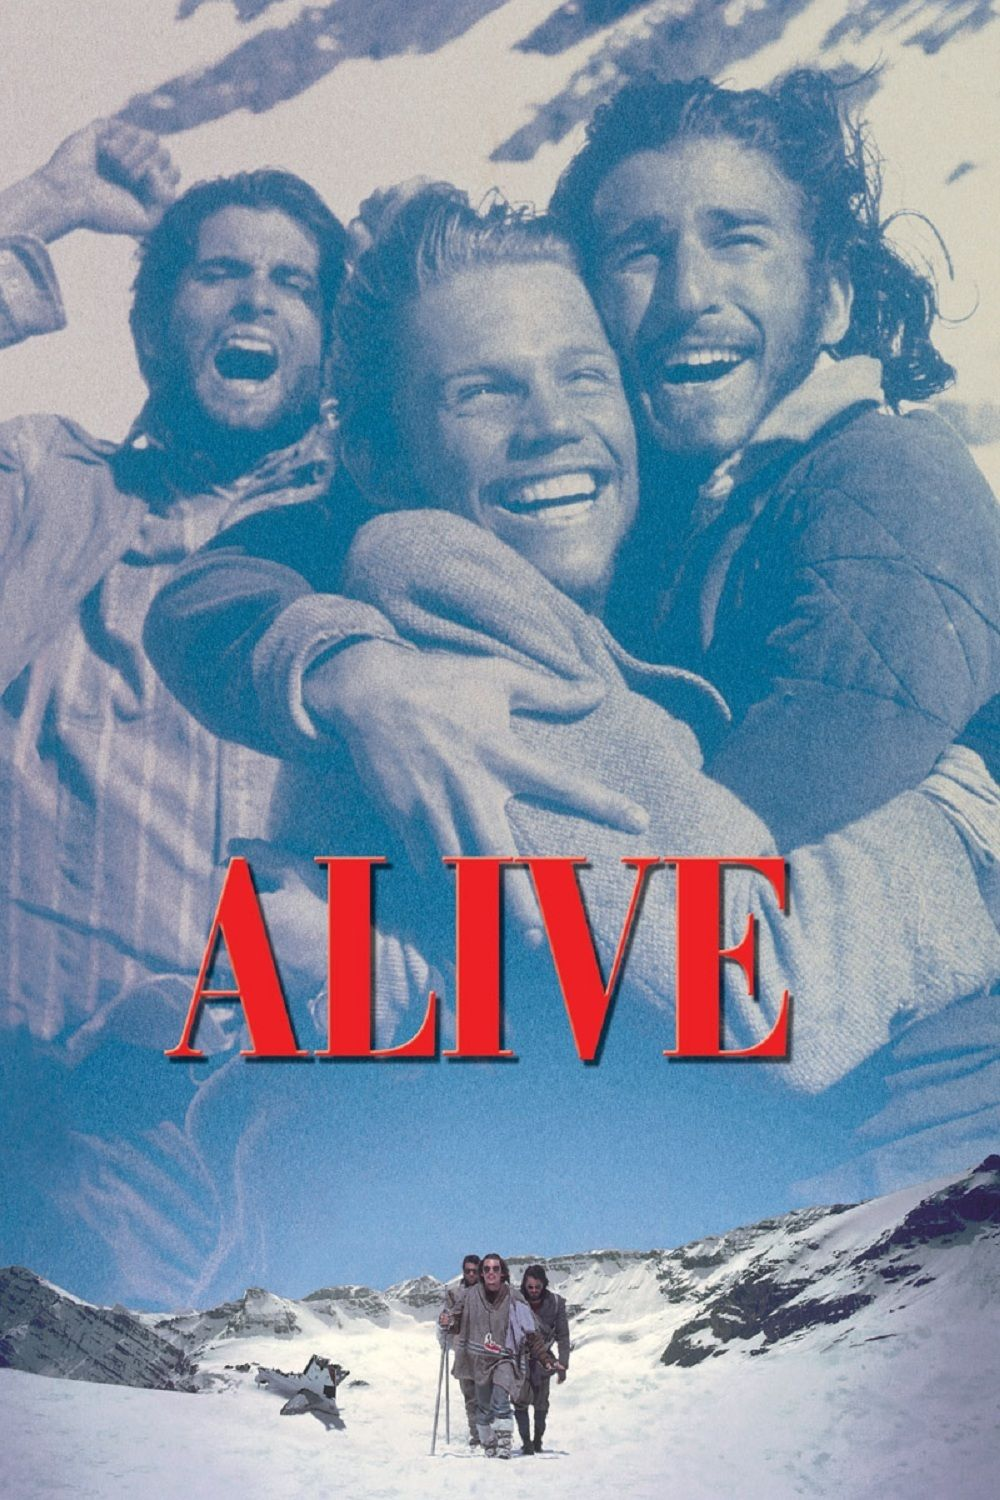 click image to watch alive 1993 wow pinterest